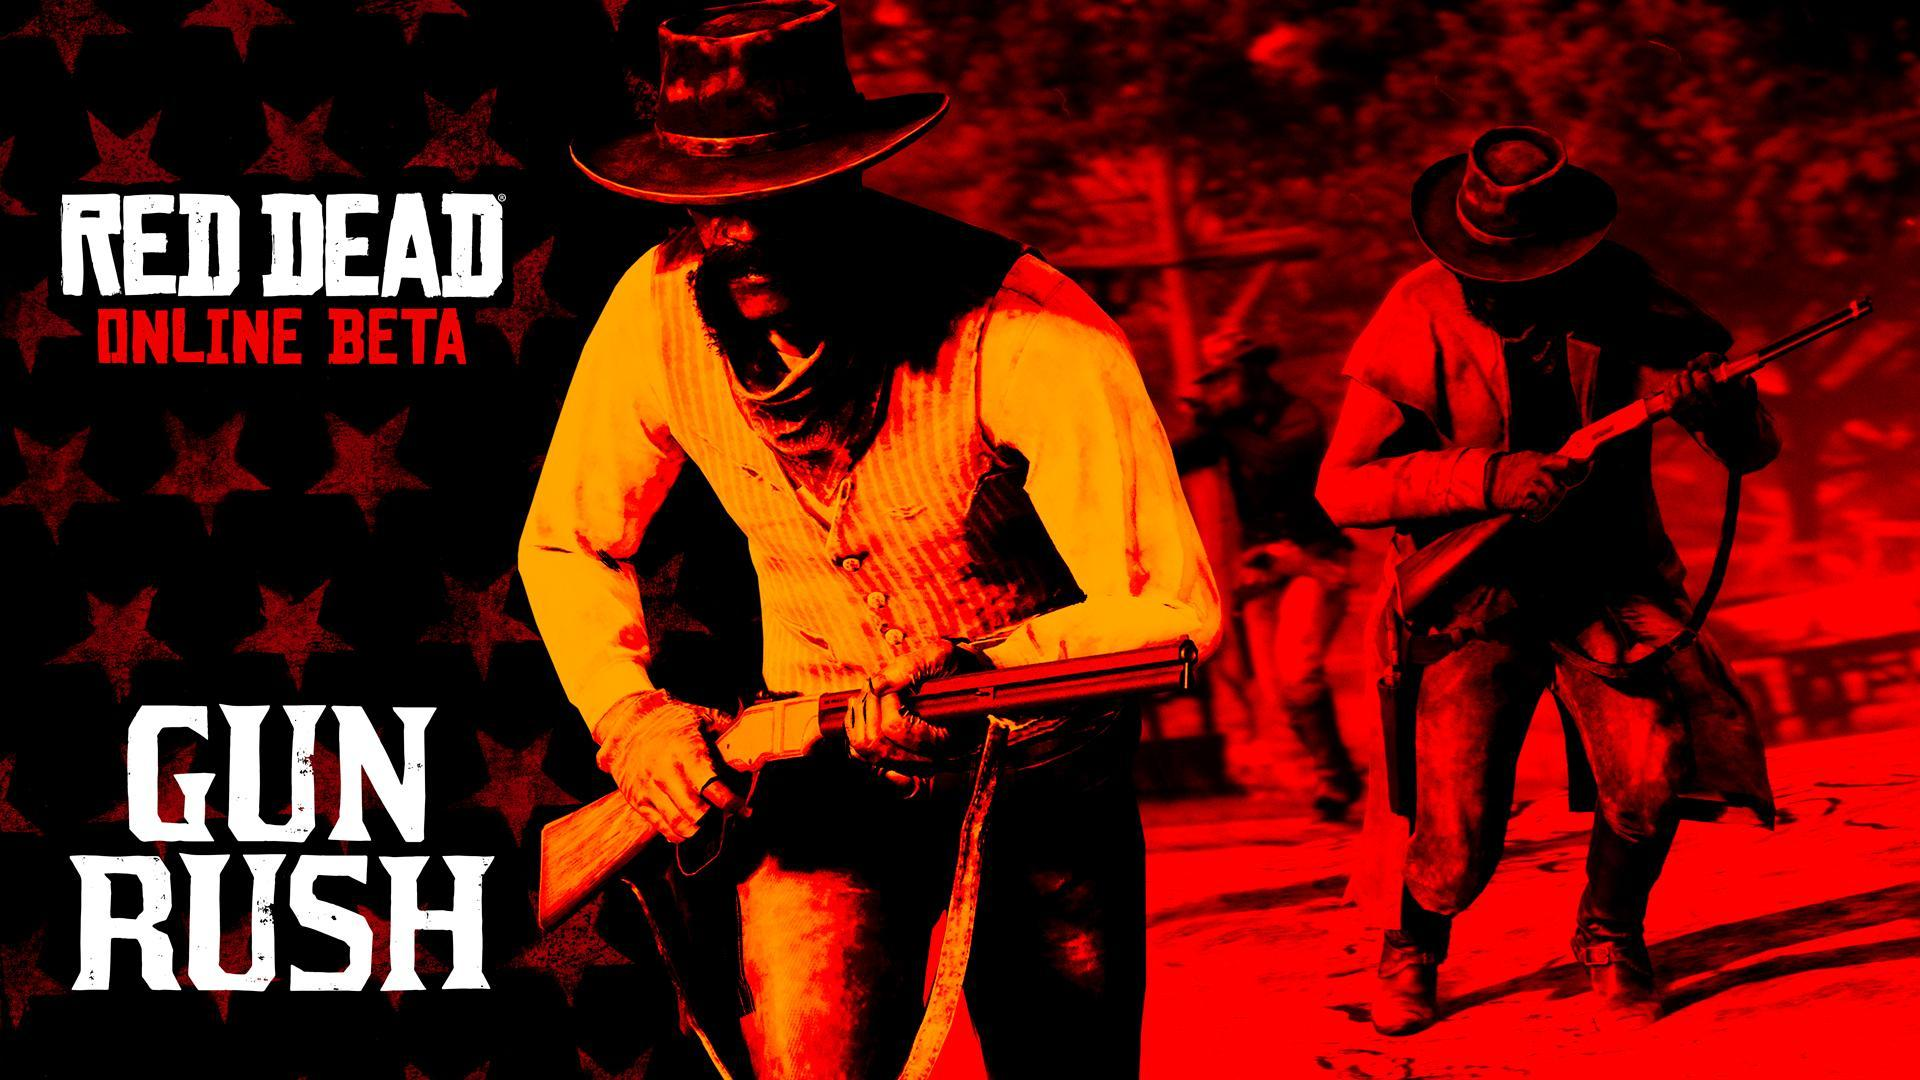 New Gun Rush Battle Royale Mode added to Red Dead Online, plus more to come